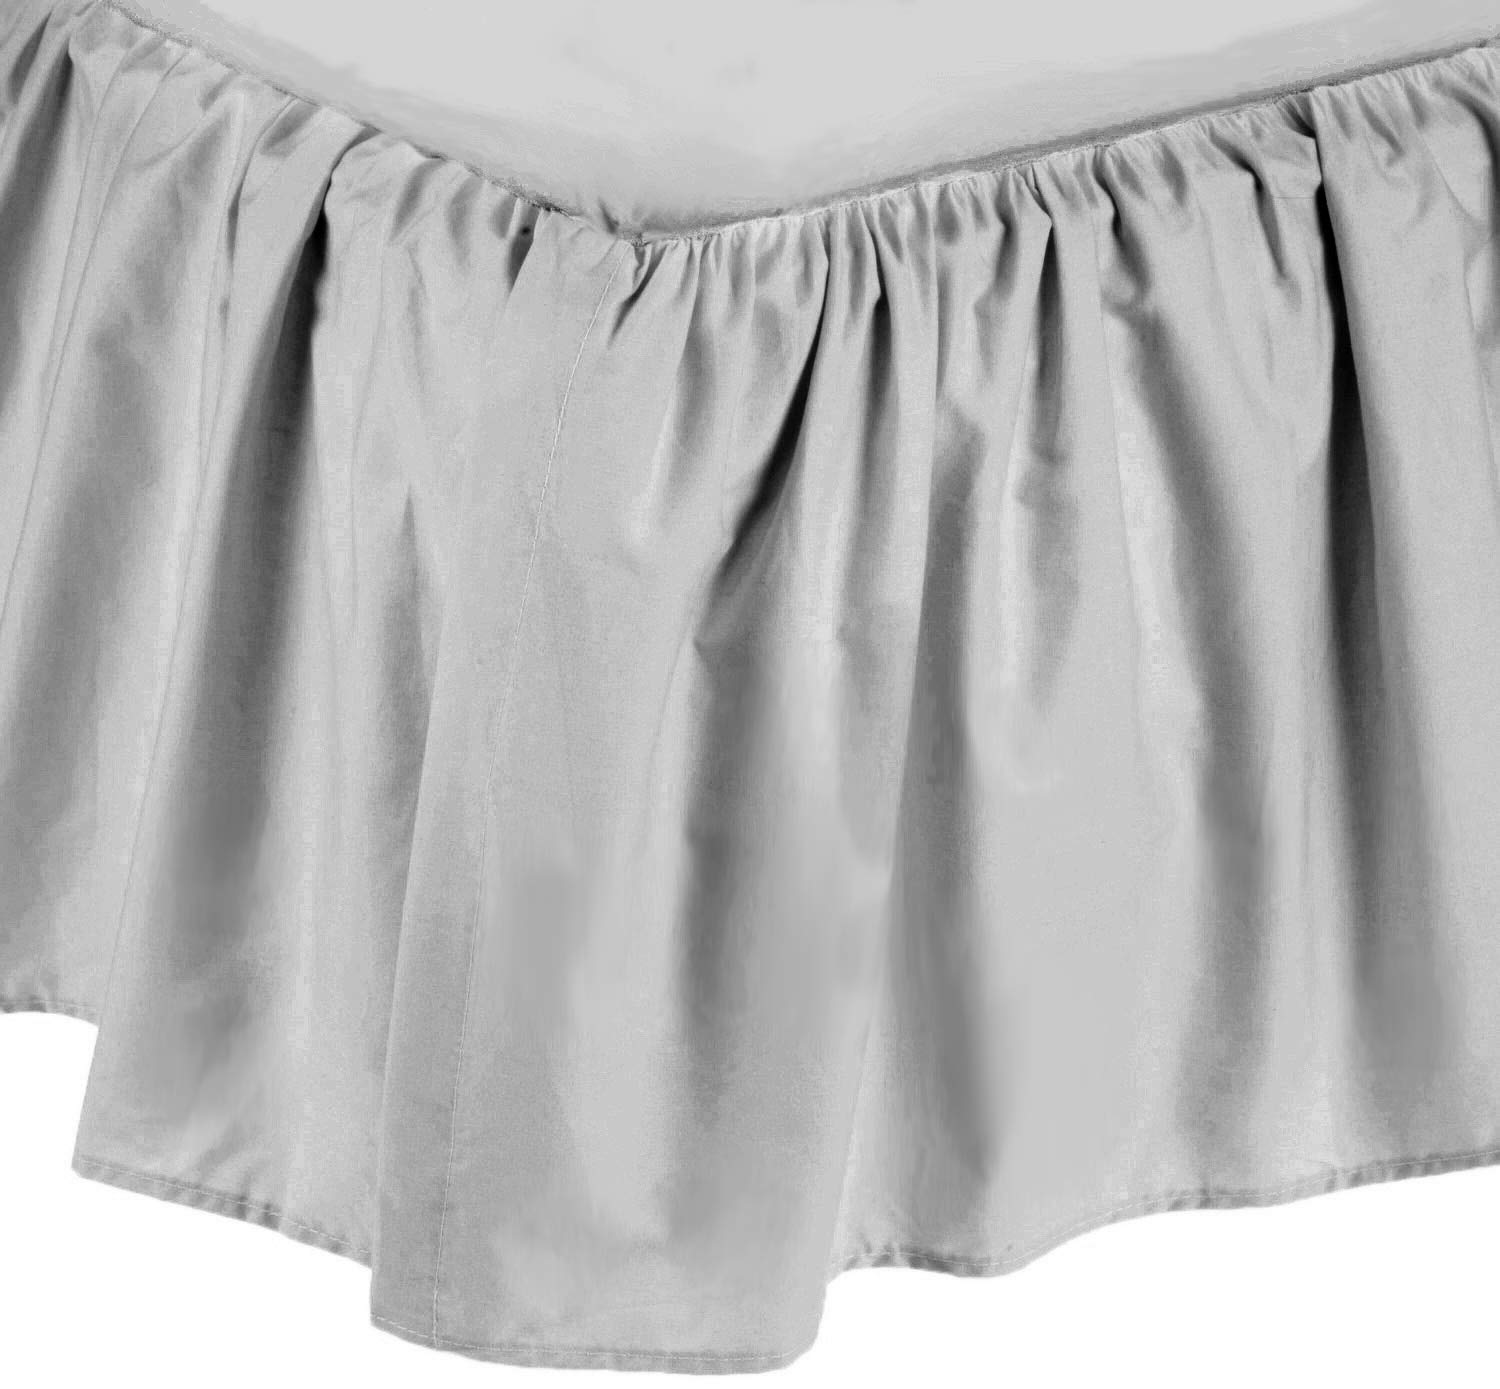 American Baby Company Microfiber Skirt in Gray